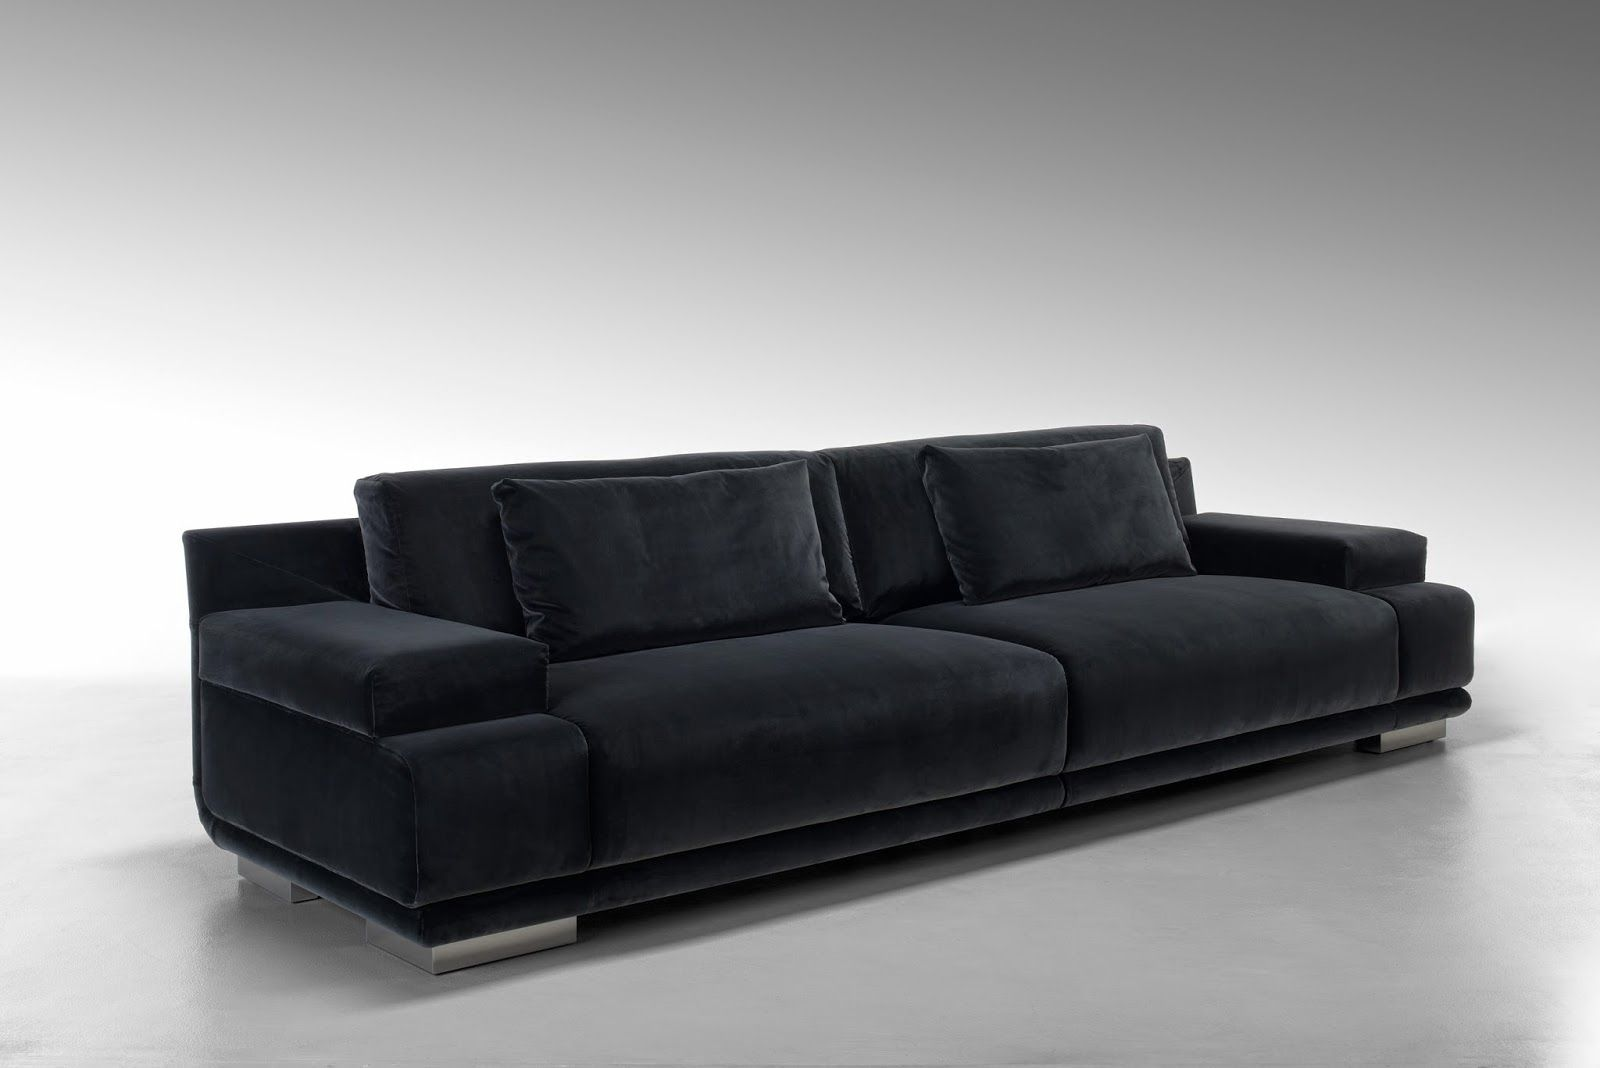 fendi casa artu sofa designed by thierry lemaire google